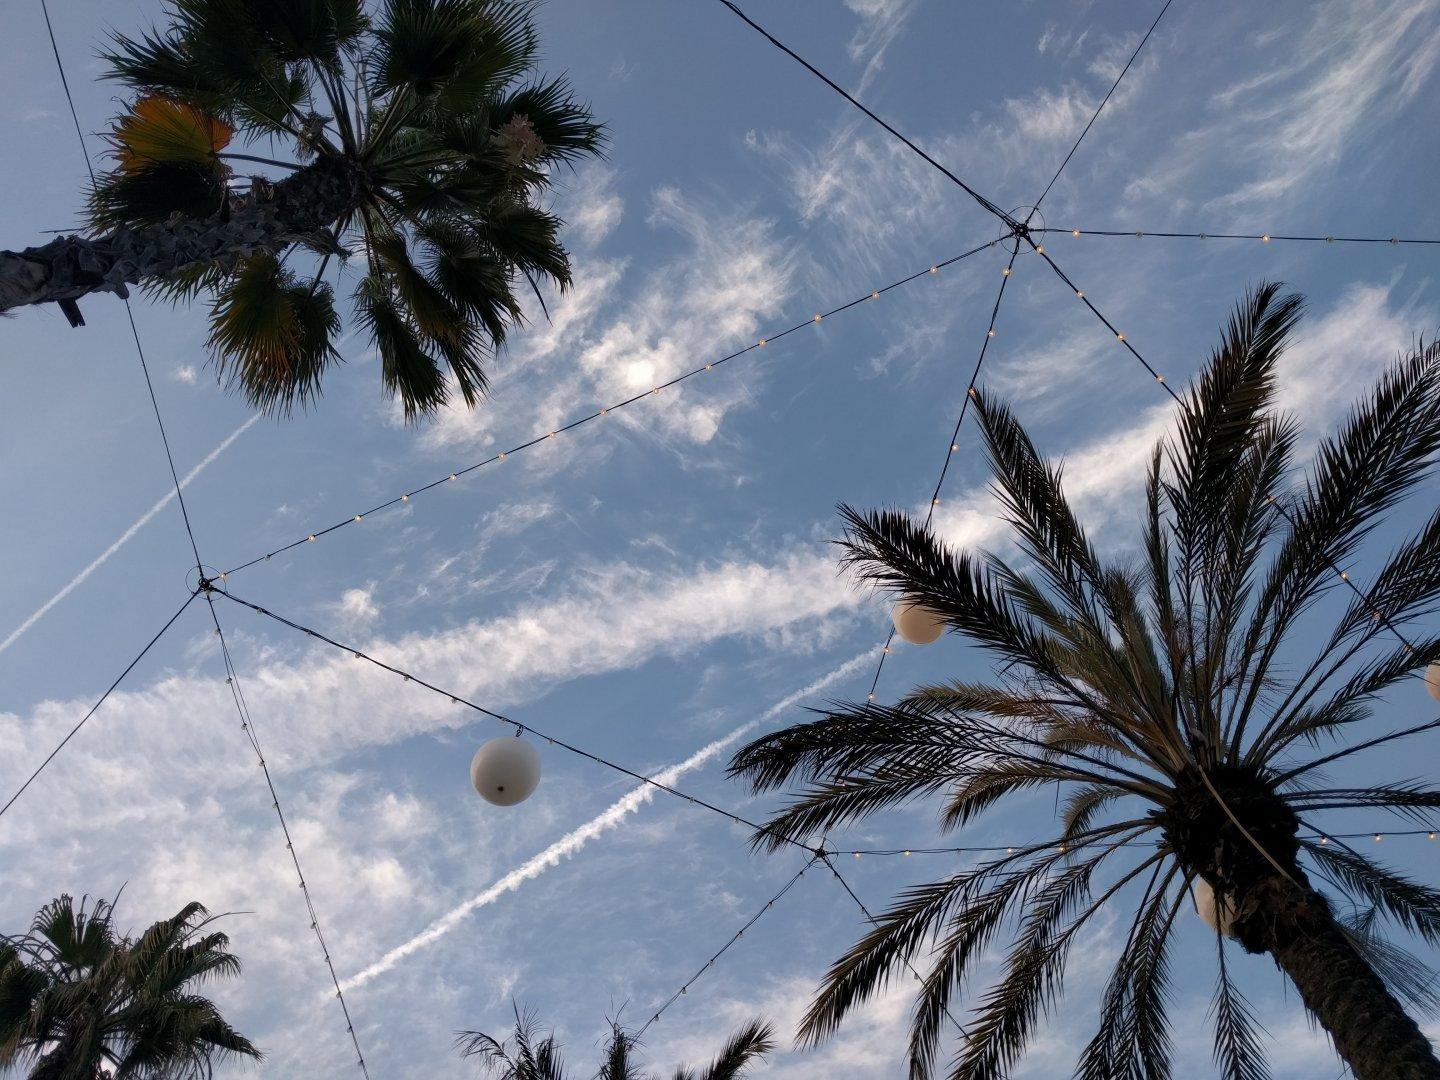 Found this shot looking through photos from my old phone. It's from the outdoor part of a mall. #sky #clouds #net